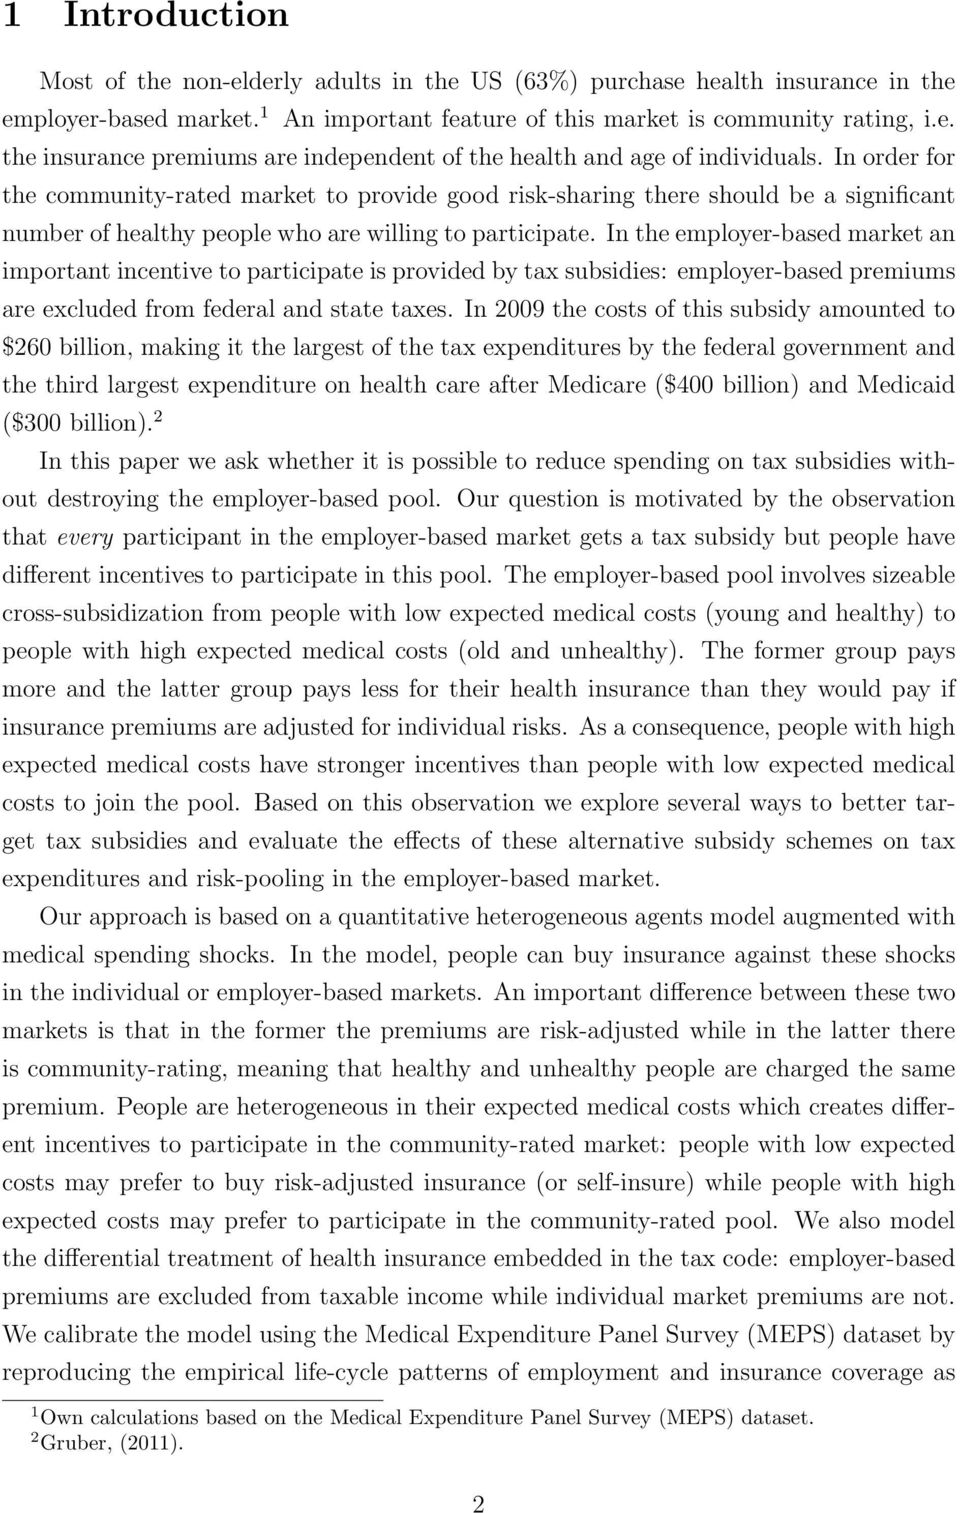 In the employer-based market an important incentive to participate is provided by tax subsidies: employer-based premiums are excluded from federal and state taxes.